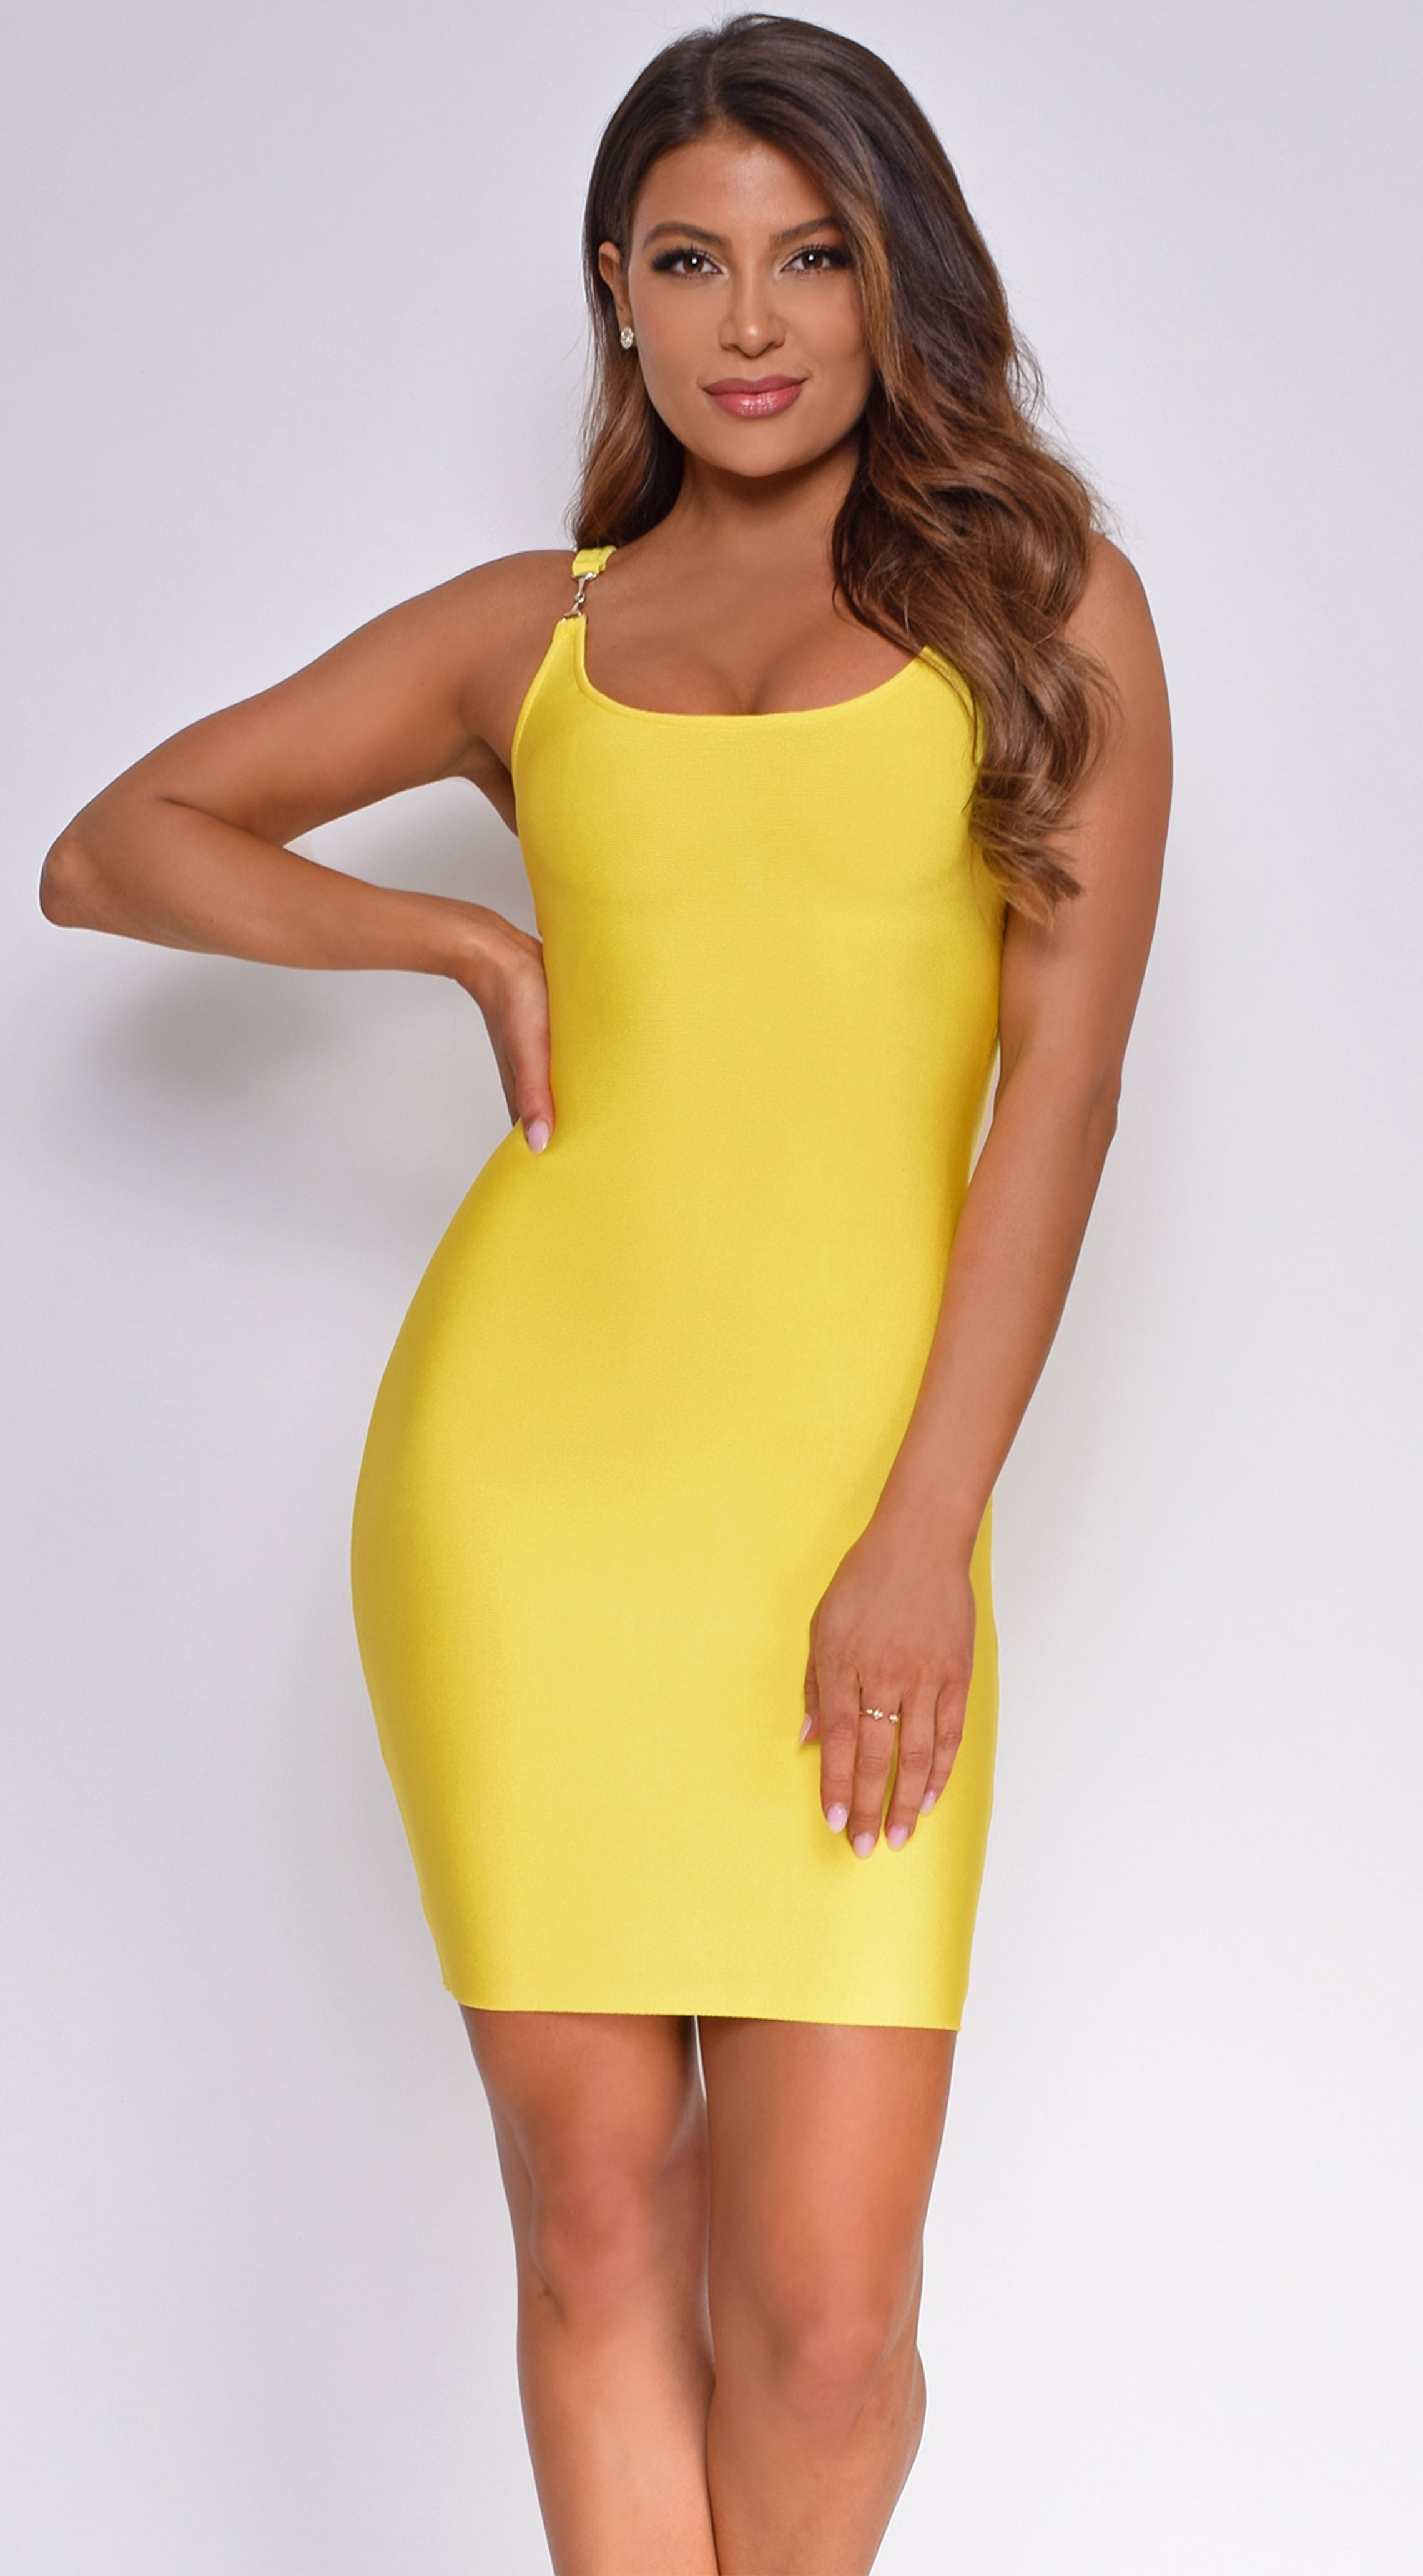 Ryden Yellow Bandage Dress